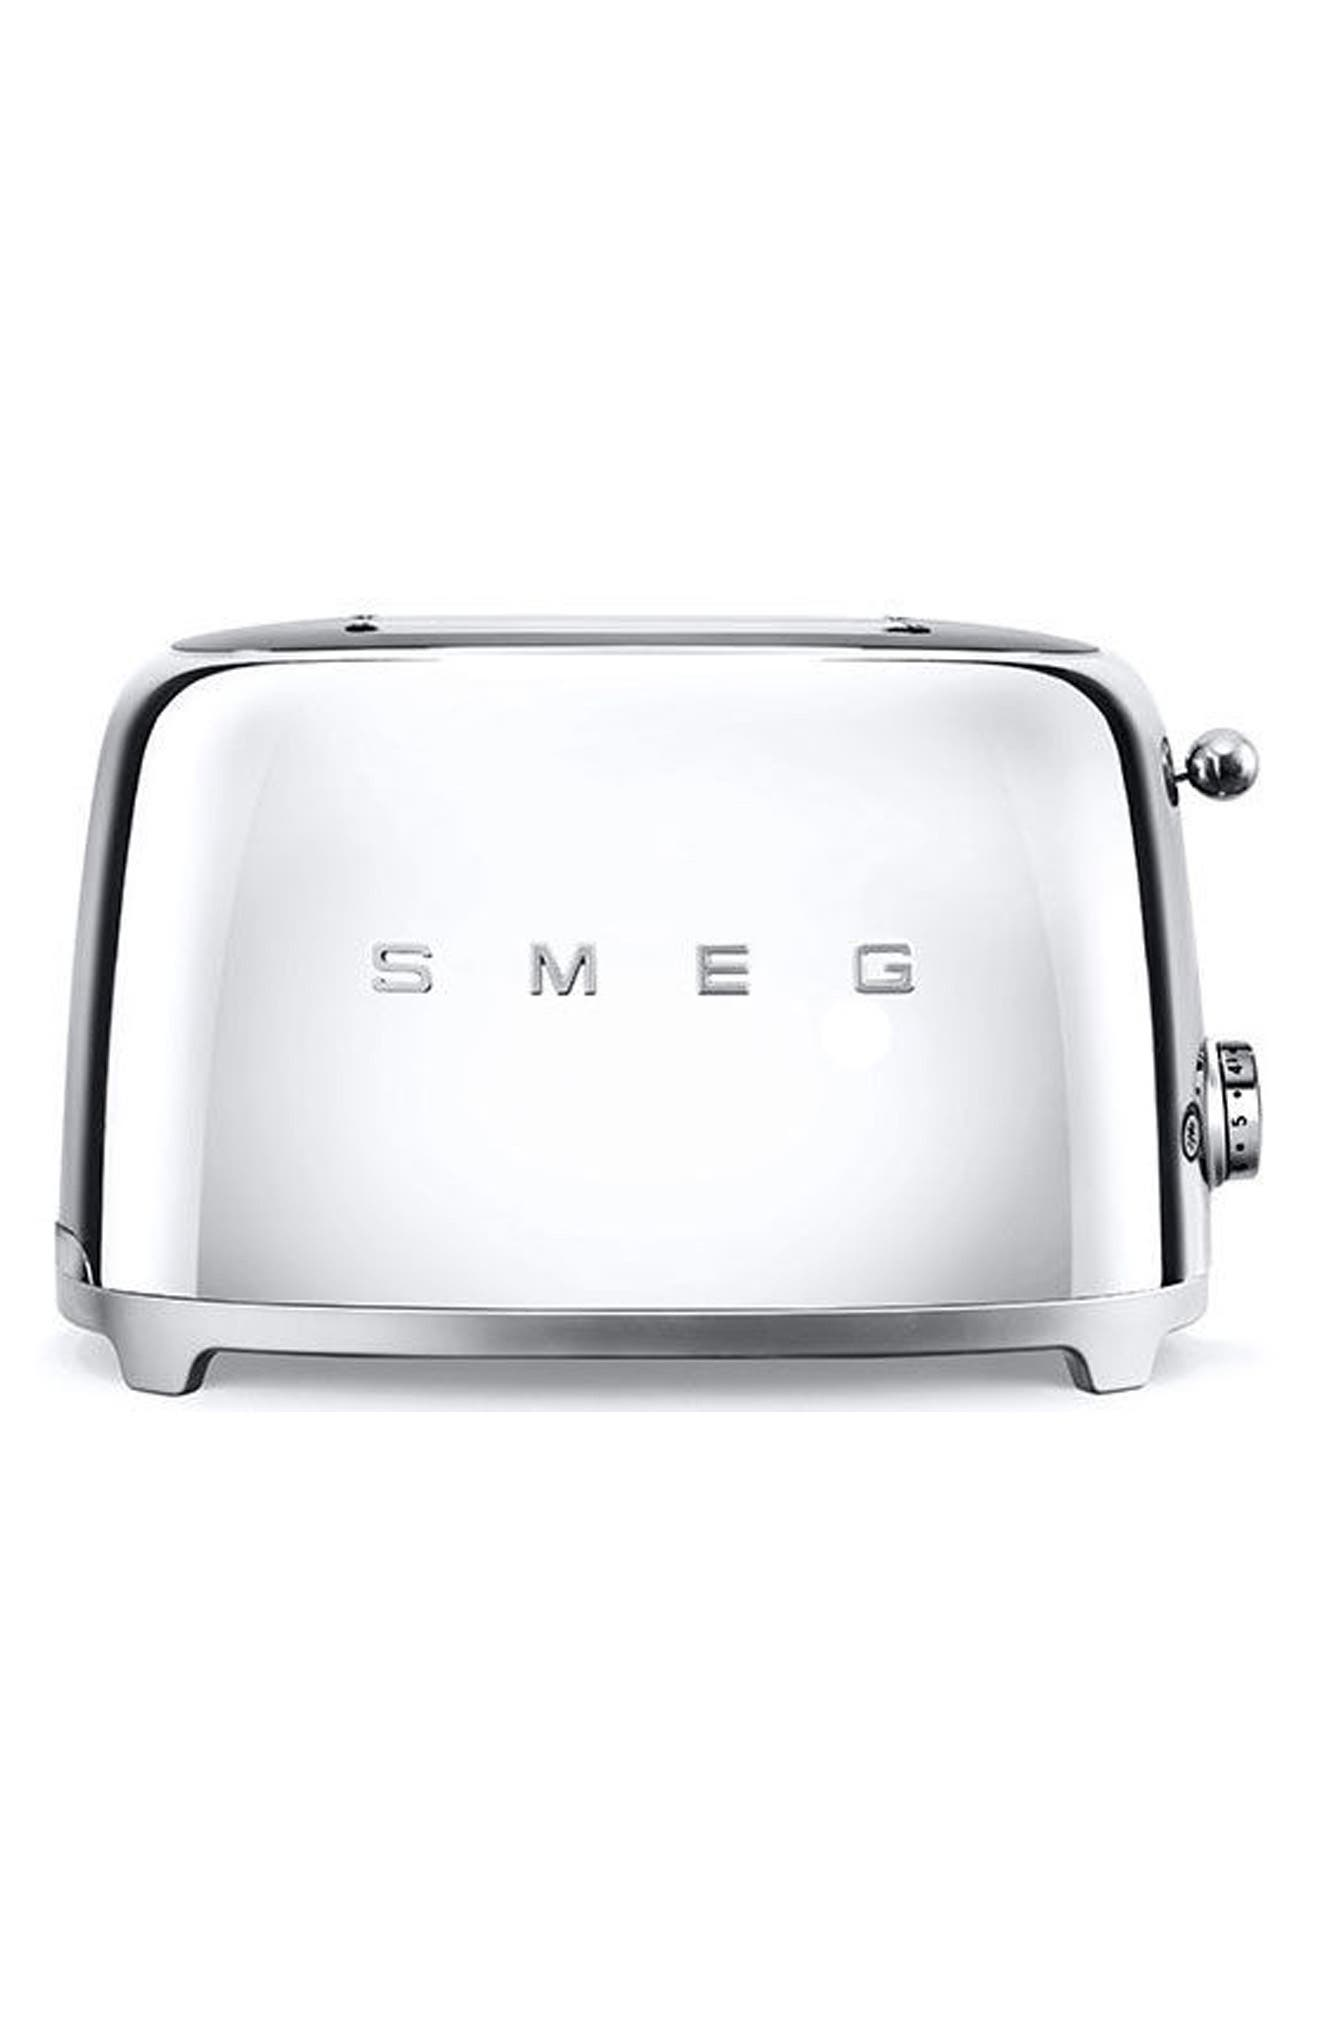 50s Retro Style Two-Slice Toaster,                             Main thumbnail 1, color,                             POLISHED STAINLESS STEEL